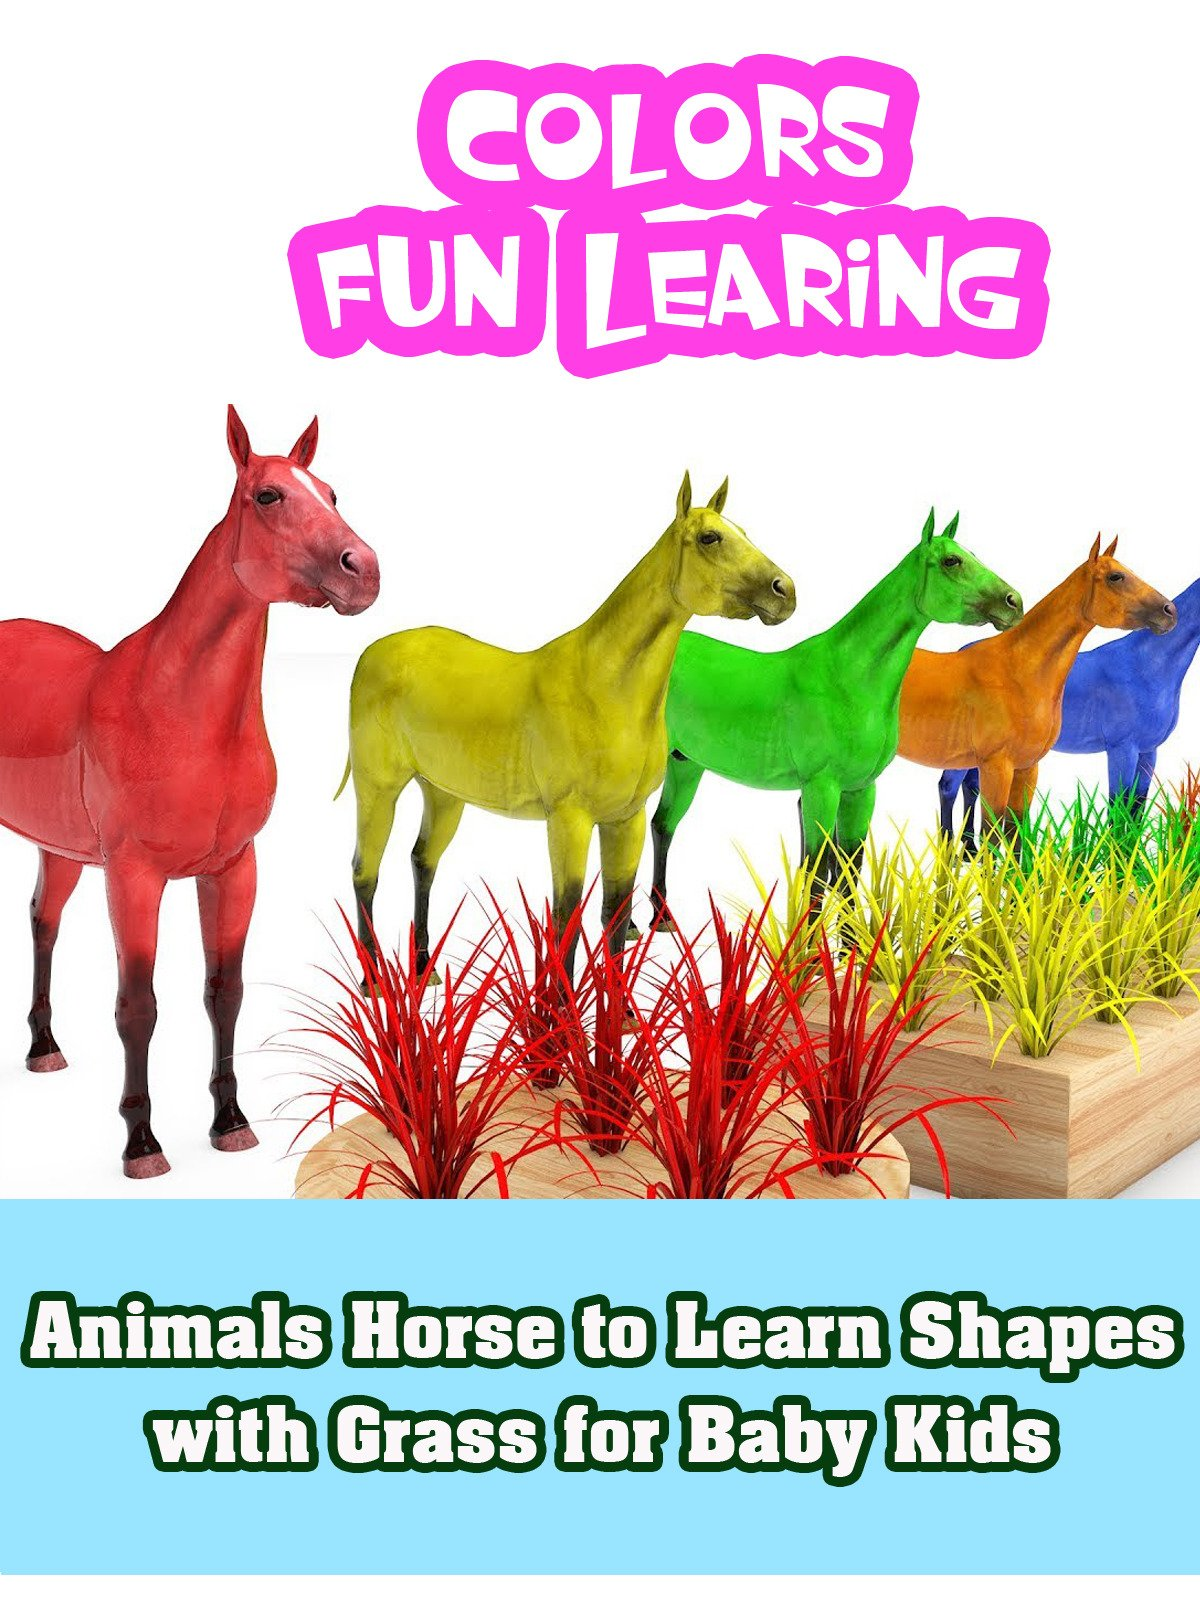 Animals Horse to Learn Shapes with Grass for Baby Kids